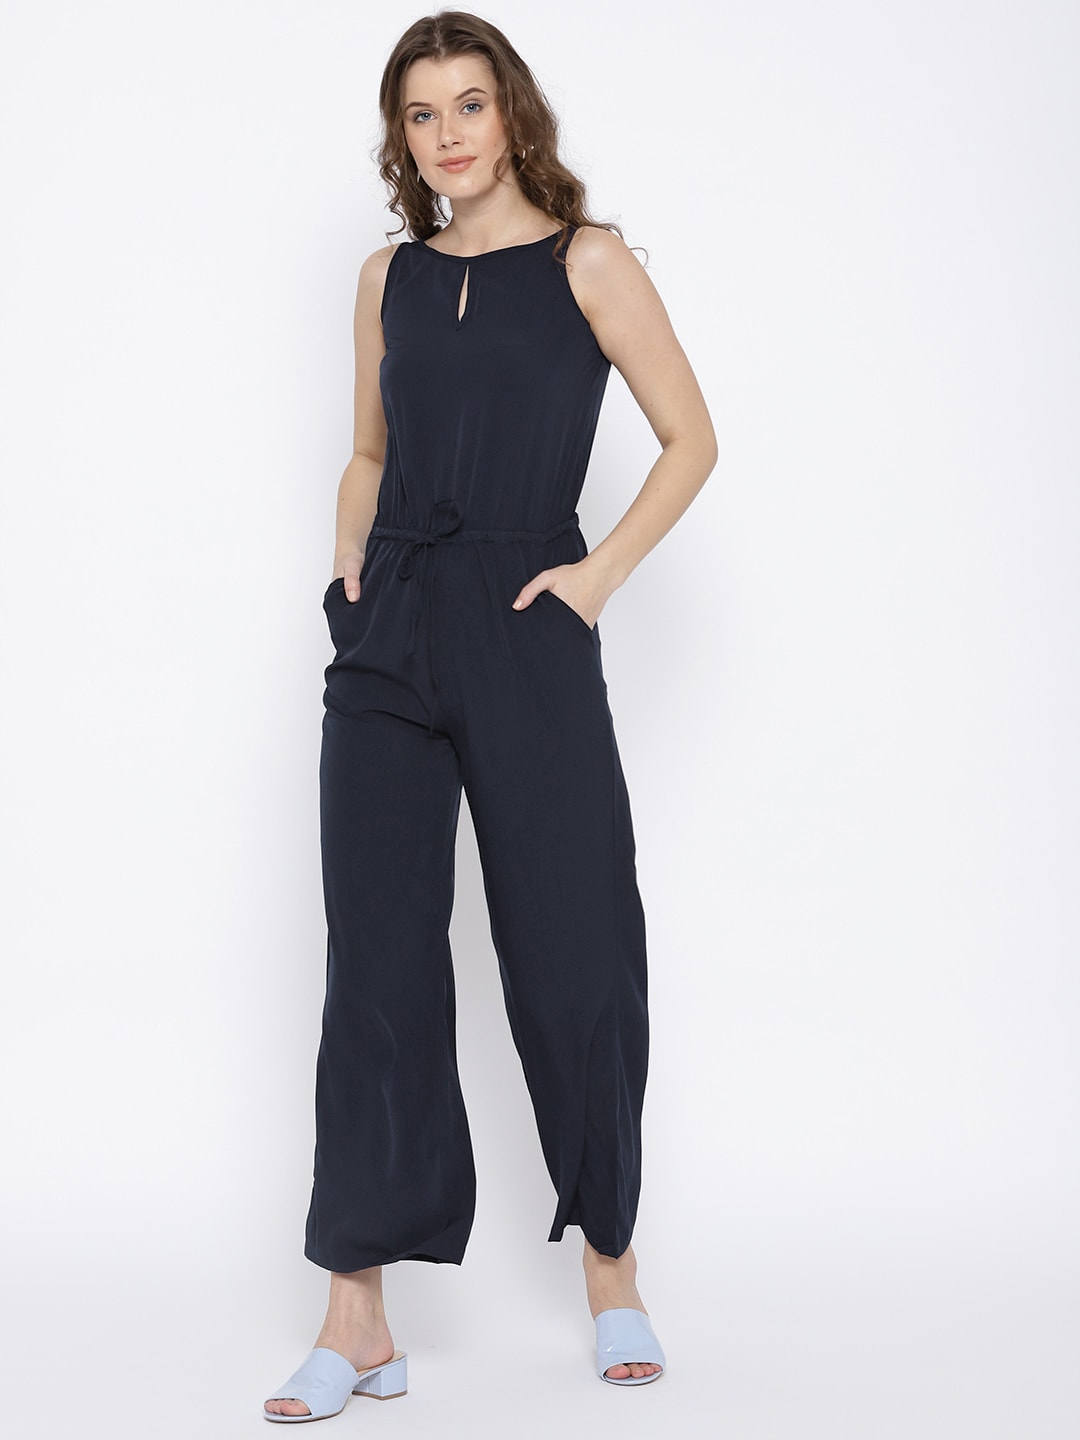 5058414f24e8 Women Jumpsuits Rompers - Buy Women Jumpsuits Rompers Online in India